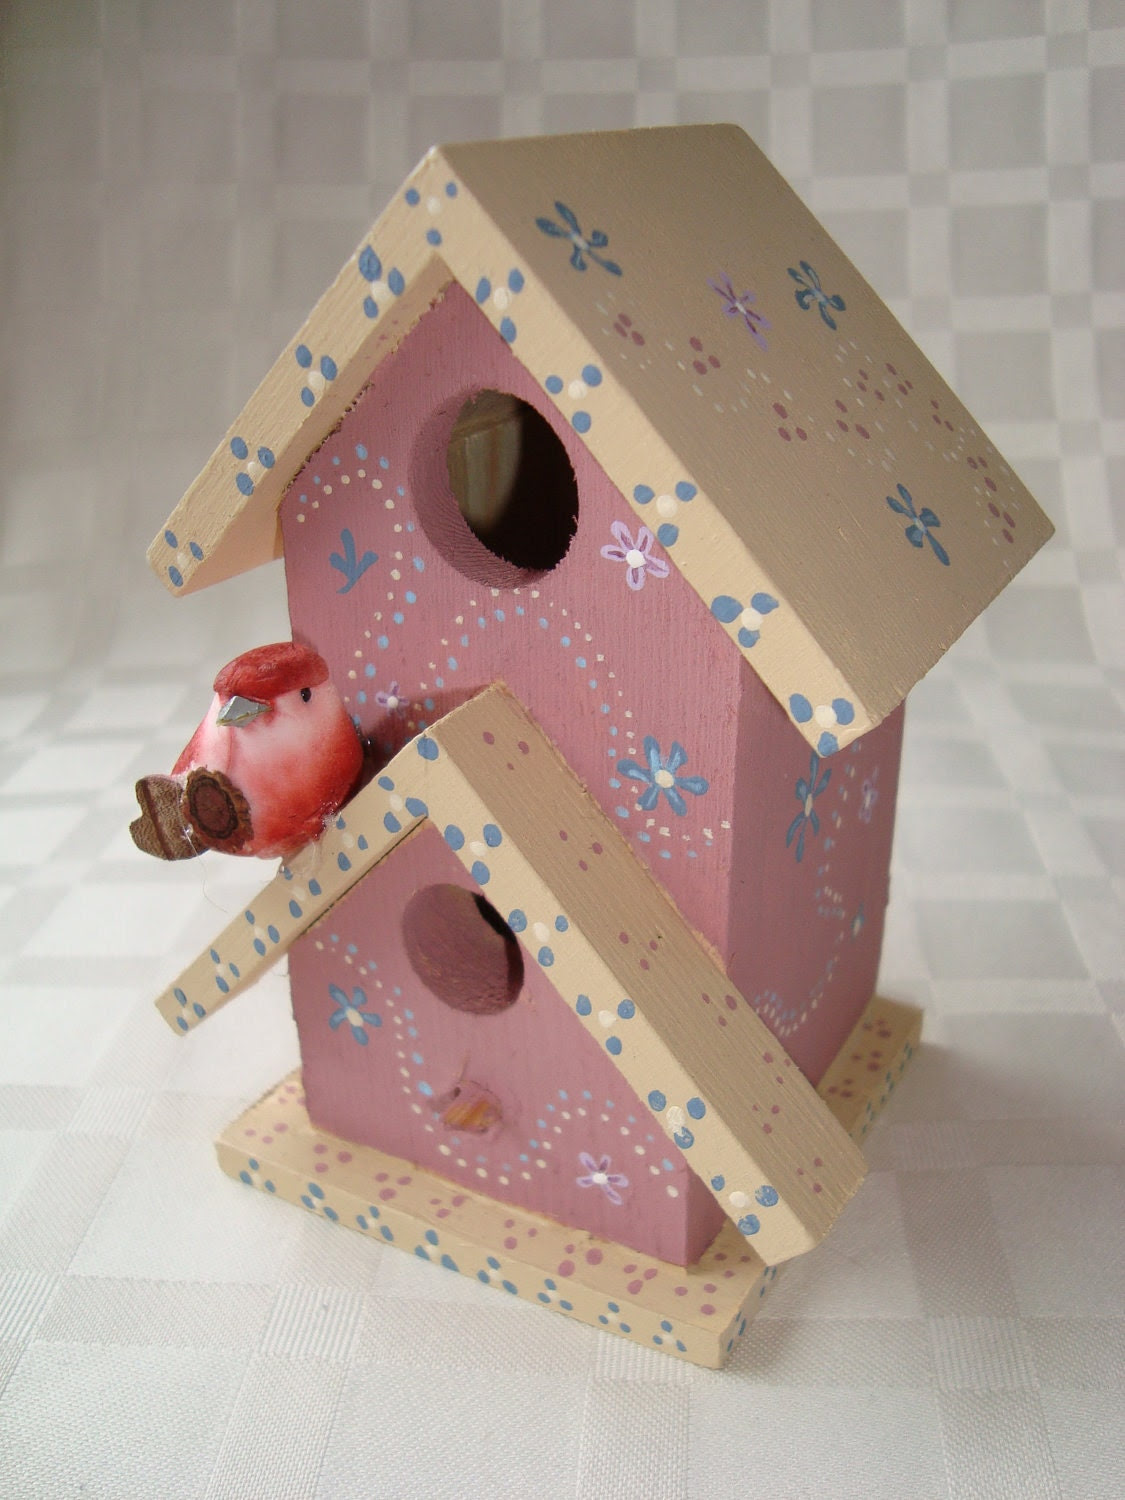 Peachy Pink Miniature Bird House with Red Bird